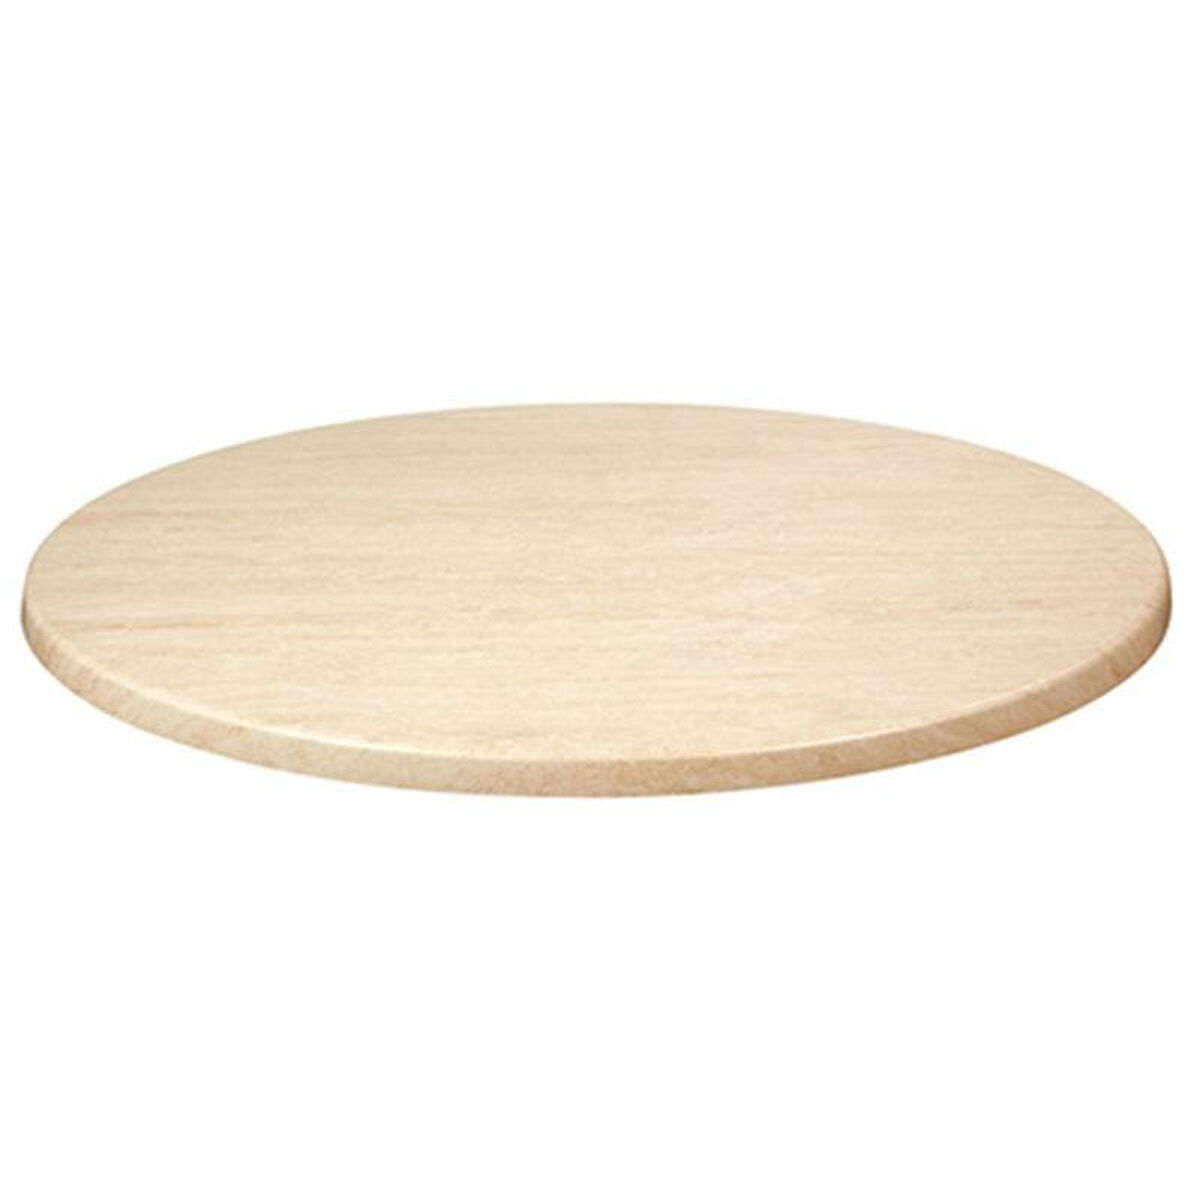 Round Outdoor Table Tops For Sale